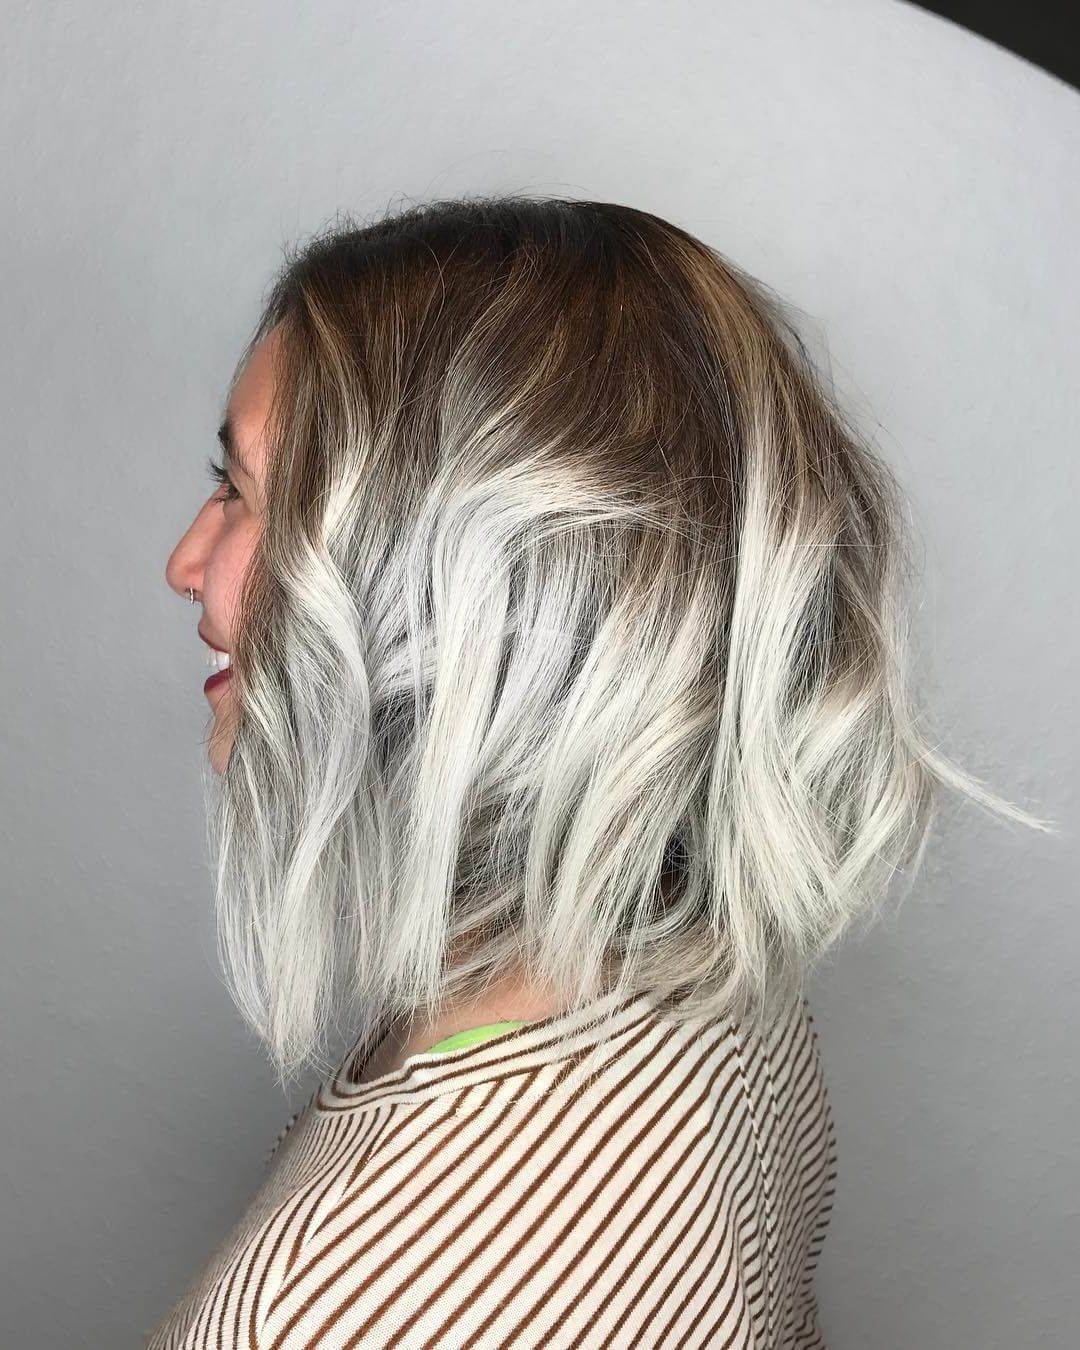 Newest Lovely Two Tone Choppy Lob Hairstyles Pertaining To 25 Most Coolest Choppy Bob Hairstyles For Women – Haircuts (View 14 of 20)